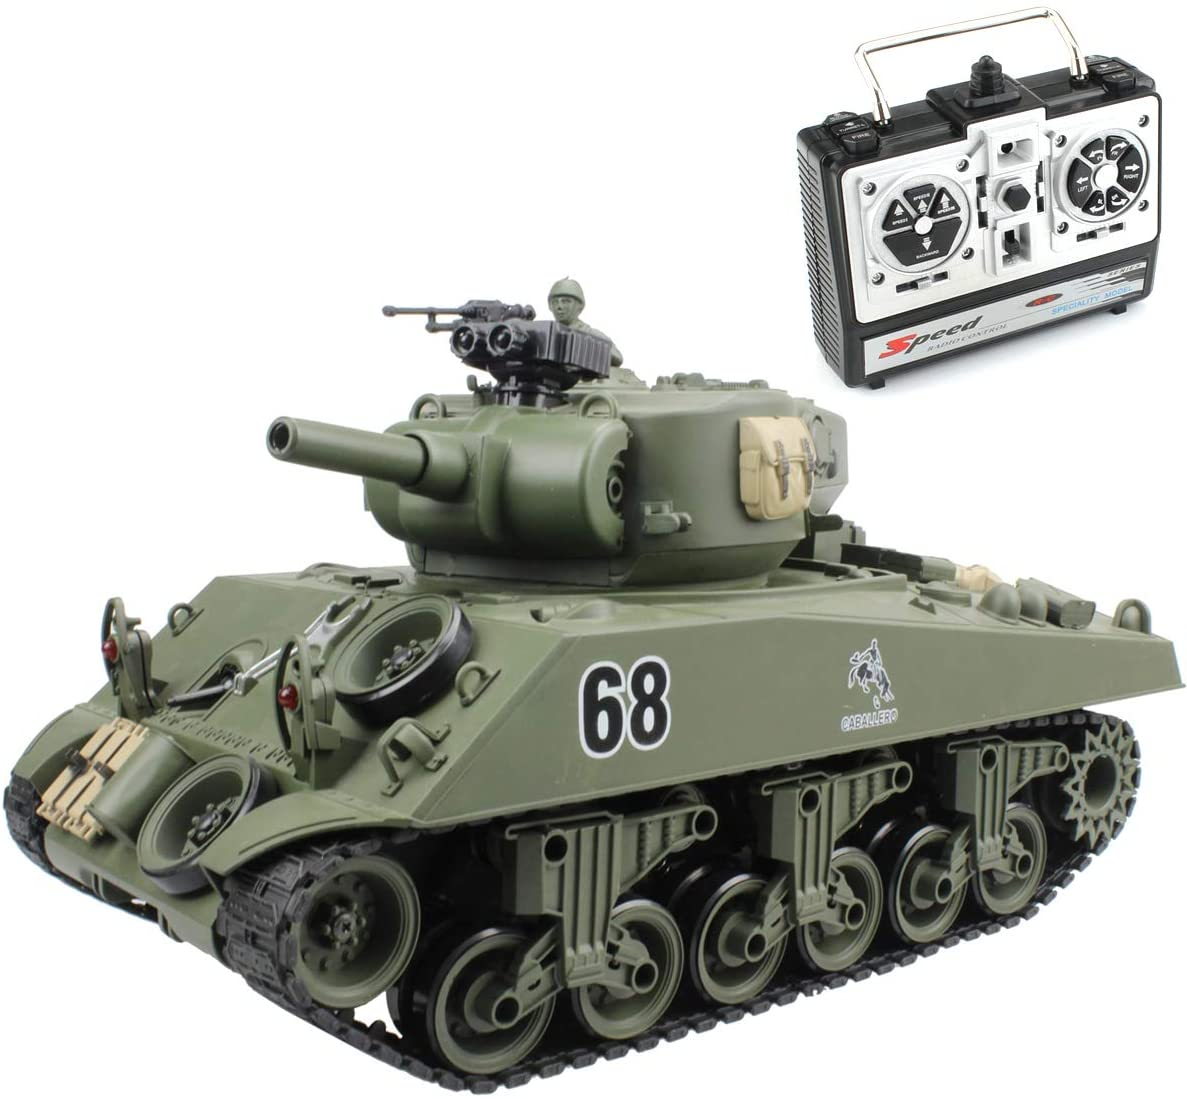 Fisca Remote Control Tank, 2.4Ghz 15CH 1/20 Sherman M4A3 Main Battle RC Tank That Shoot Airsoft for Kids Age 10 11 12-16 Year Old